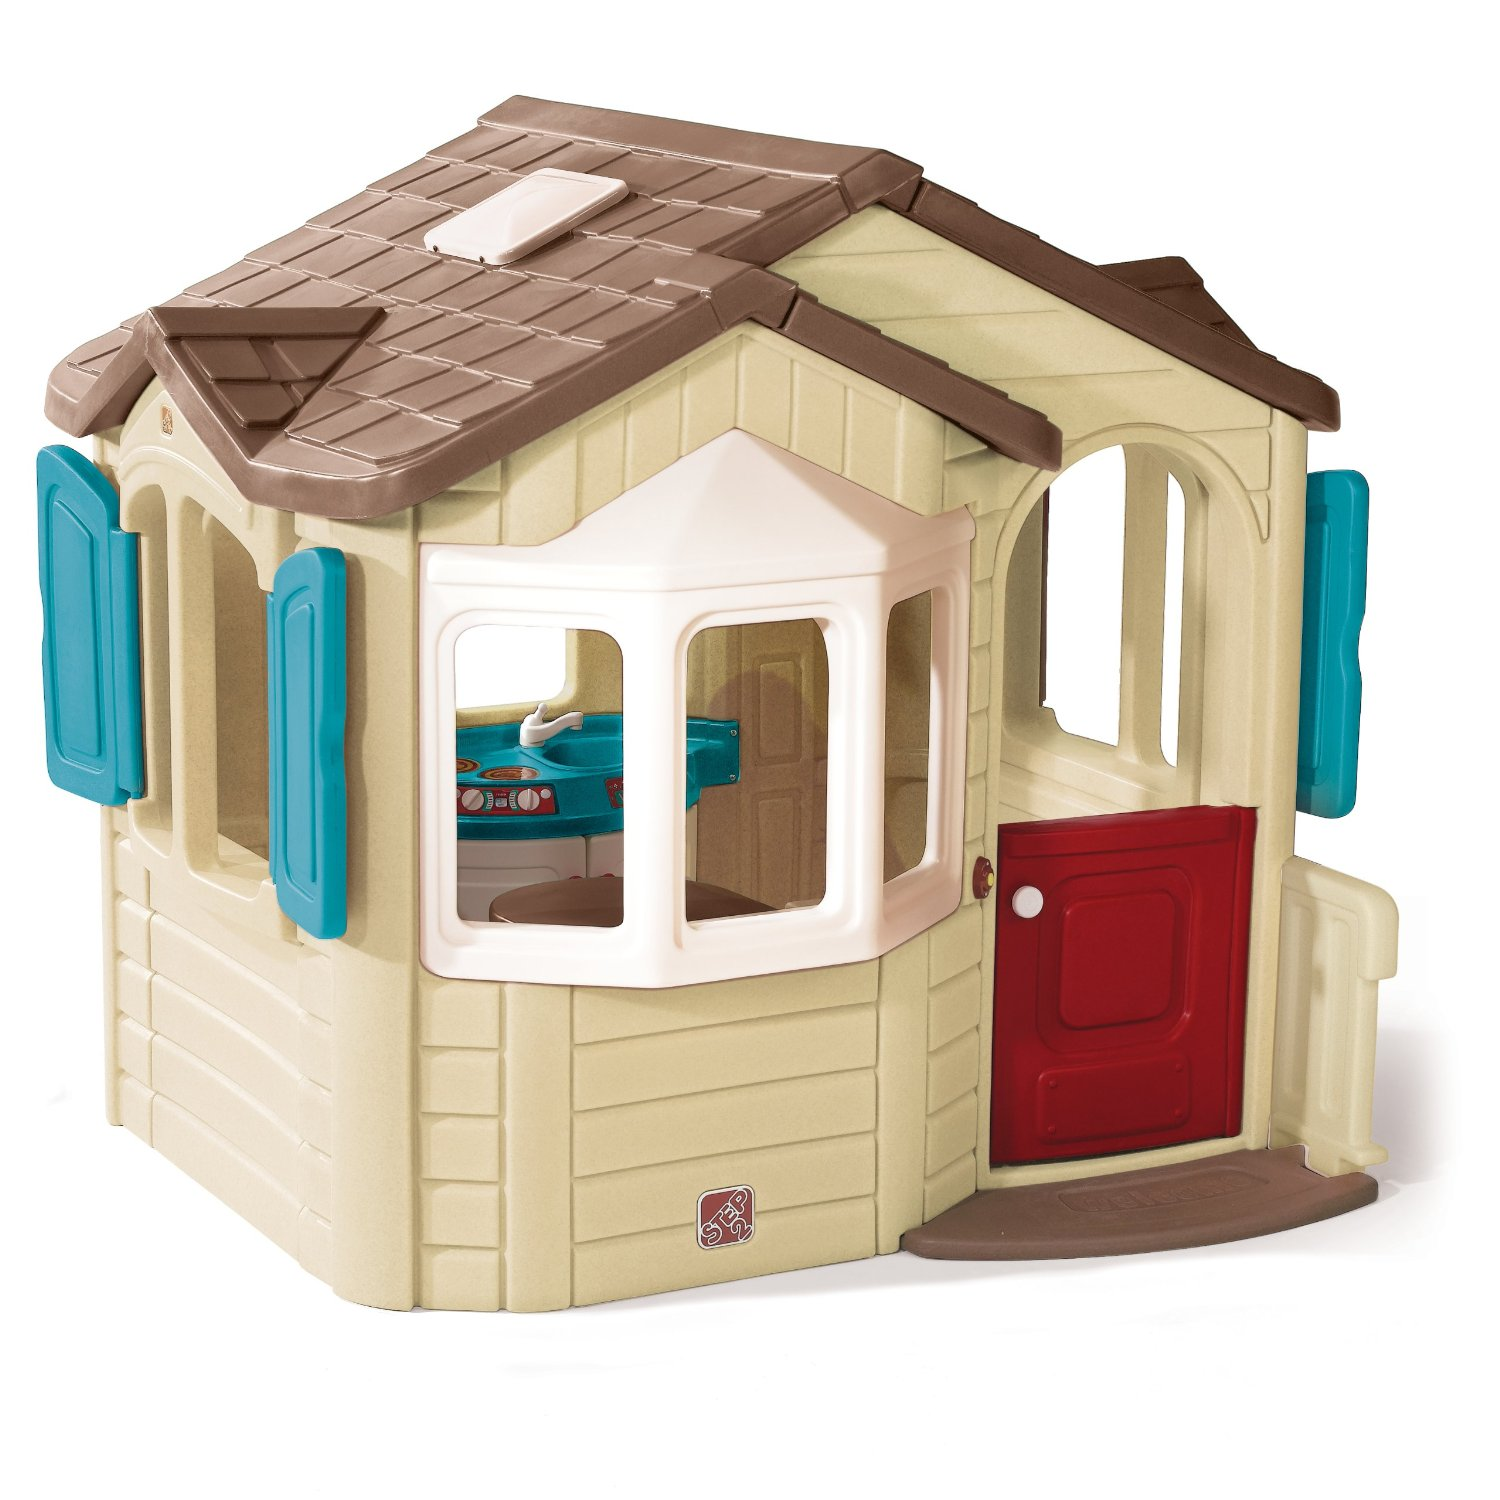 total fab outdoor playhouse with kitchen inside. Black Bedroom Furniture Sets. Home Design Ideas